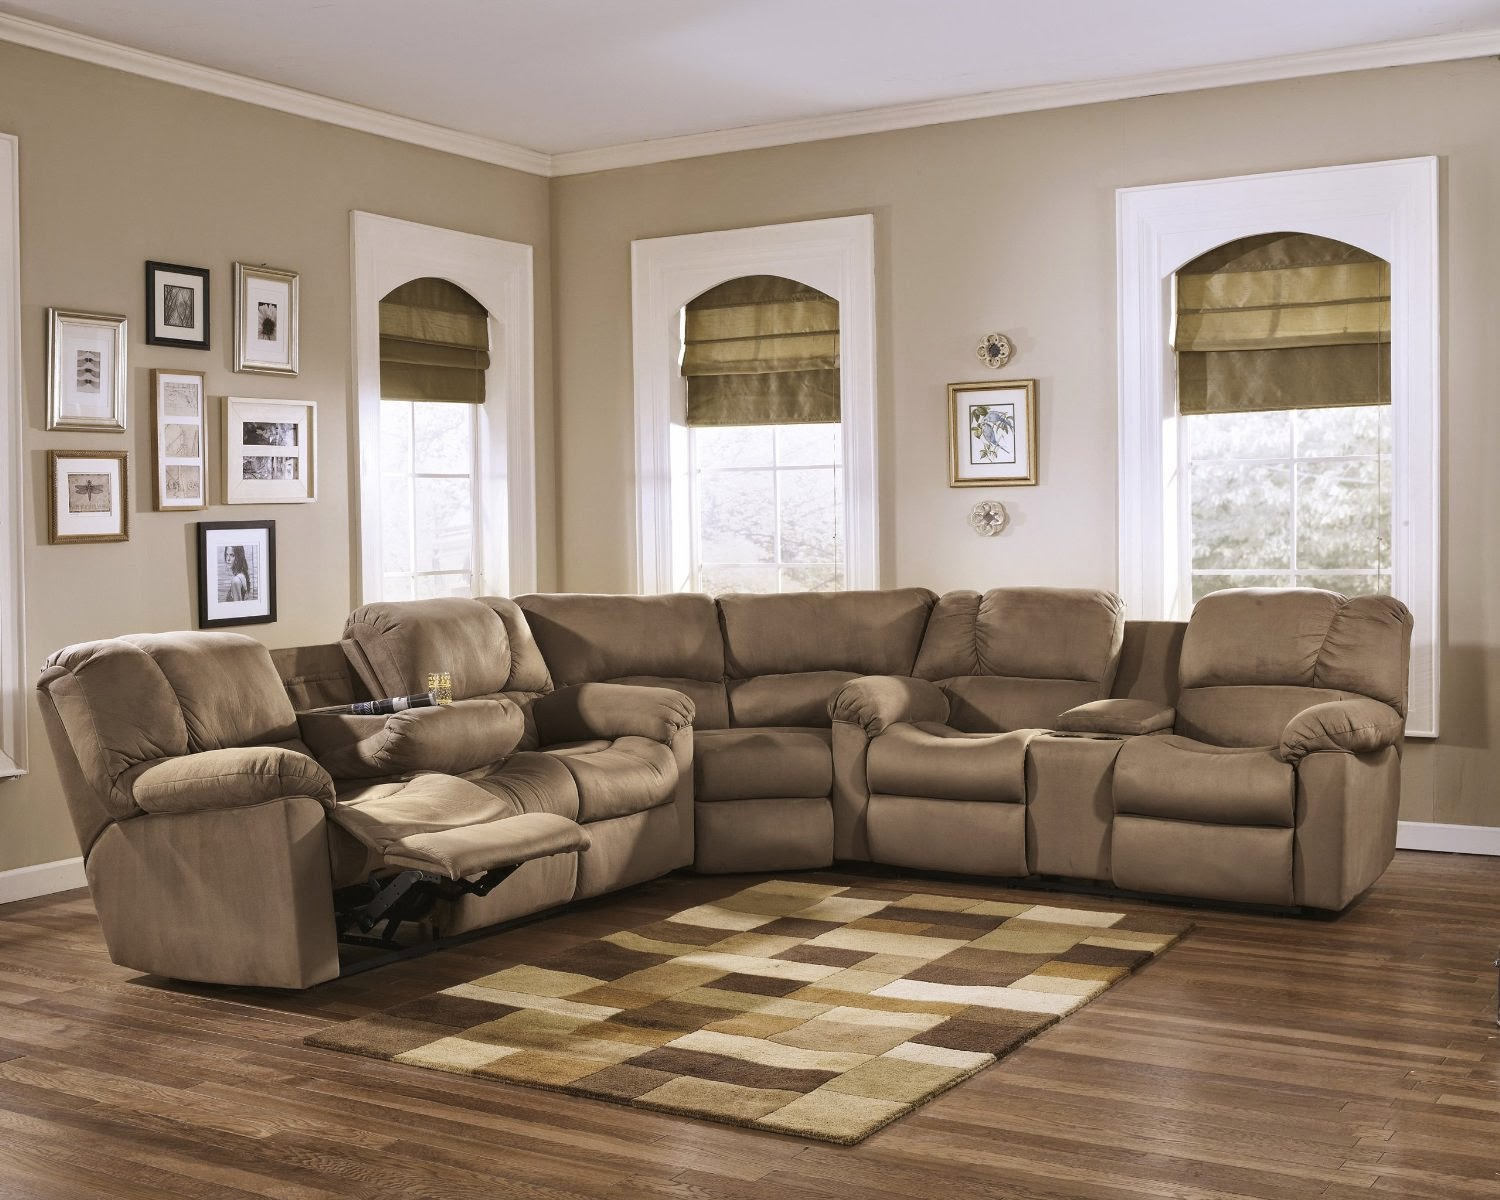 fabric sectional sofa with recliner how can i make my sleeper more comfortable best leather reclining brands reviews